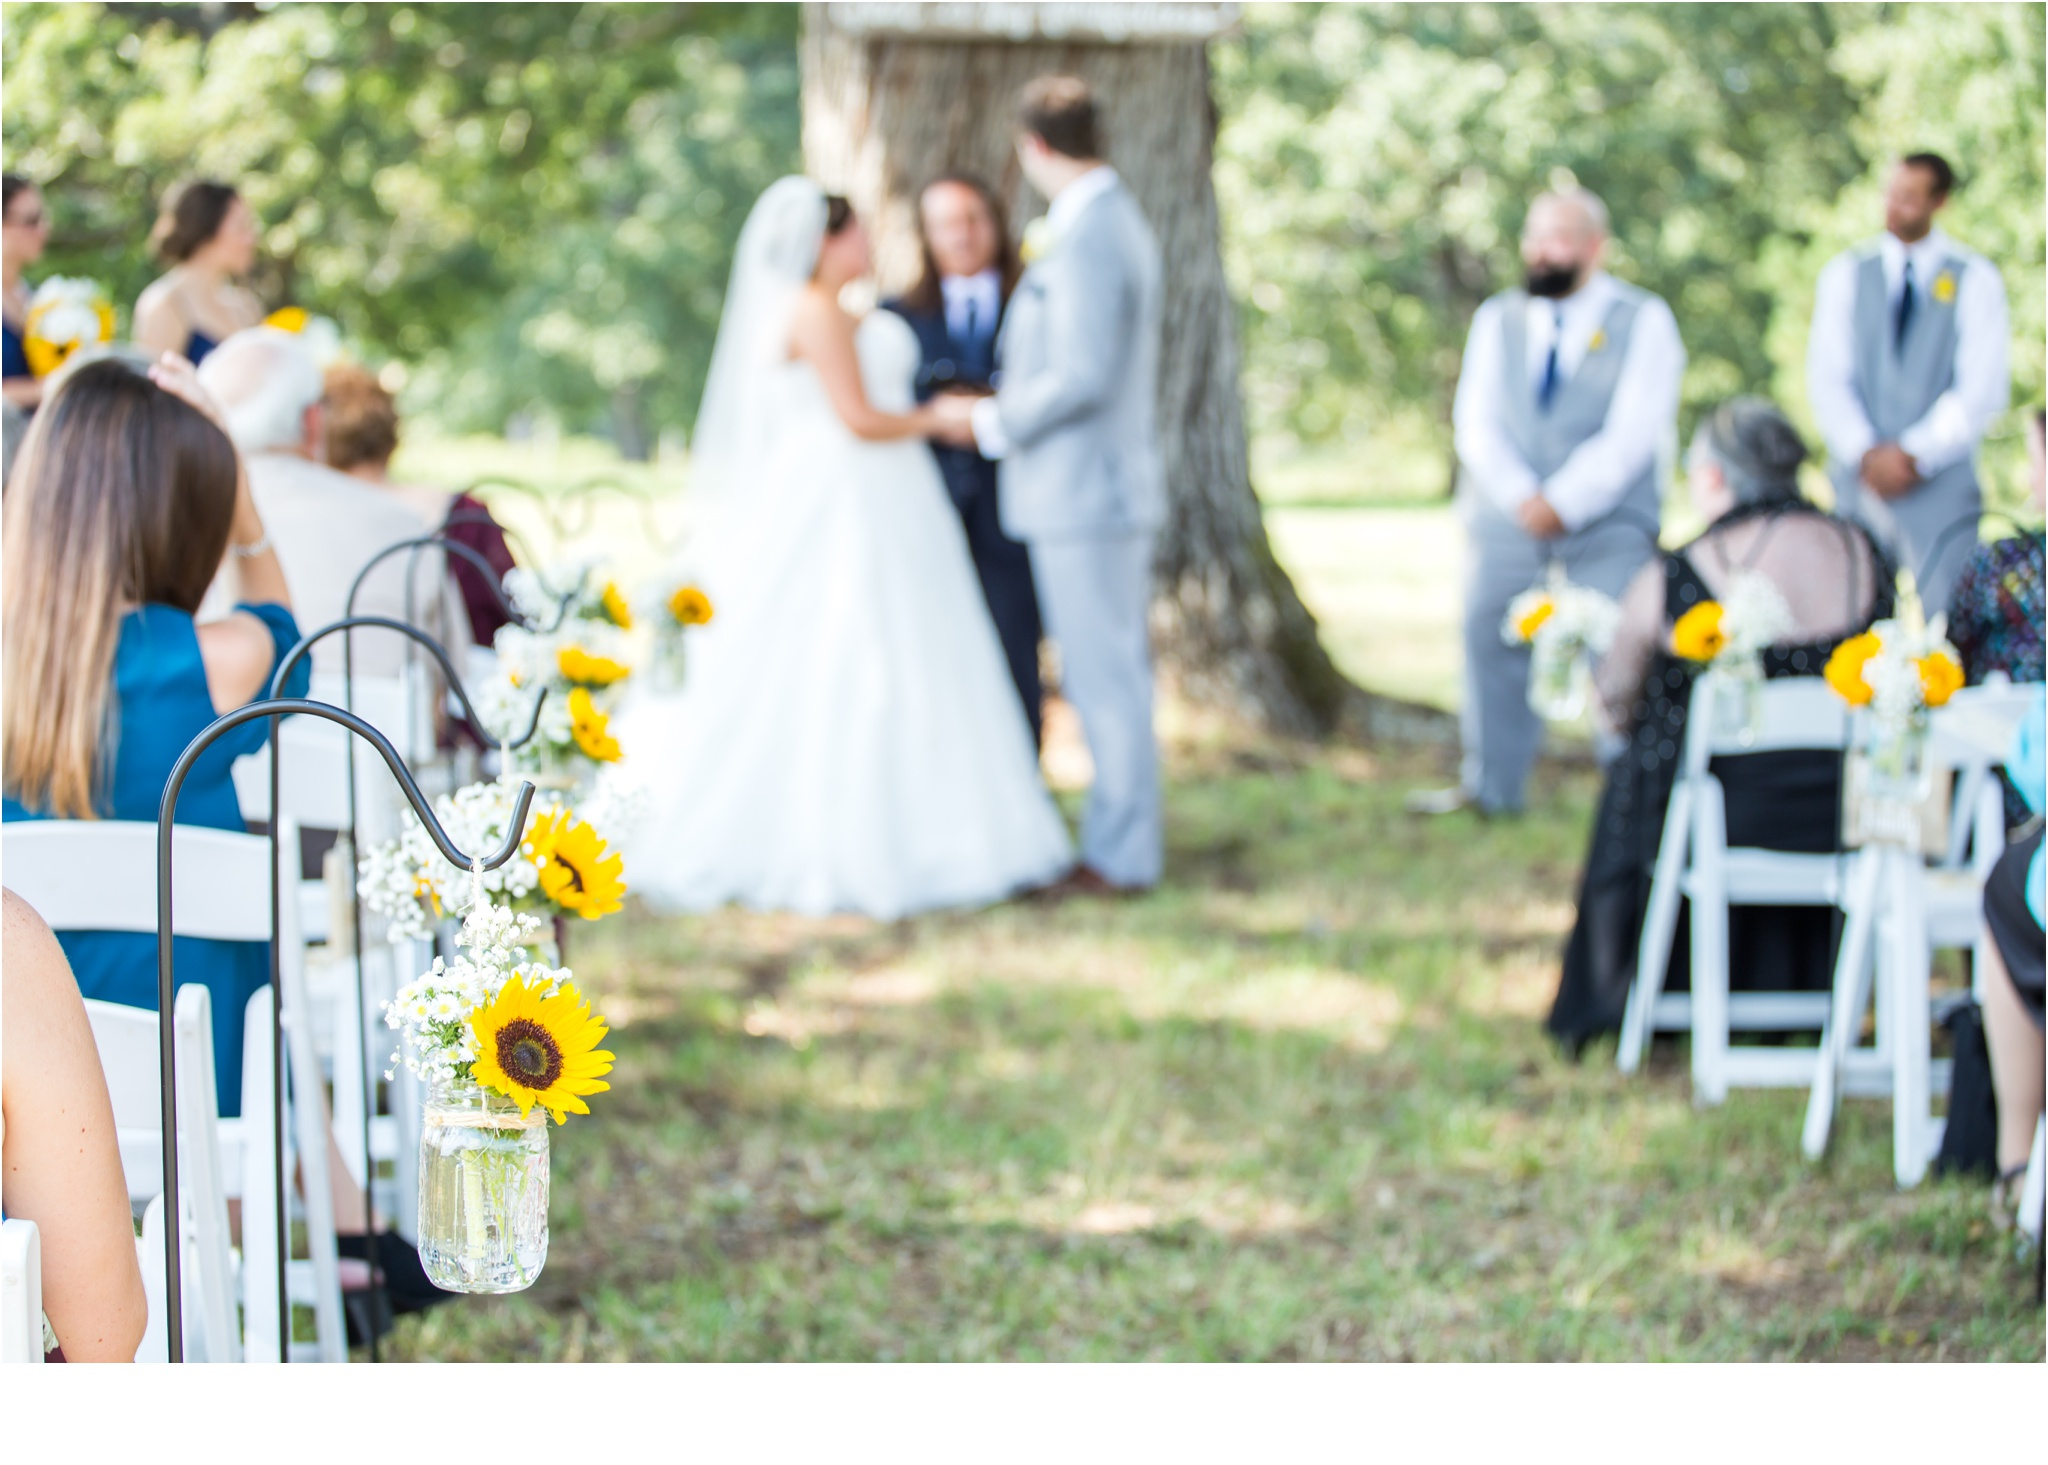 Rainey_Gregg_Photography_St._Simons_Island_Georgia_California_Wedding_Portrait_Photography_0322.jpg